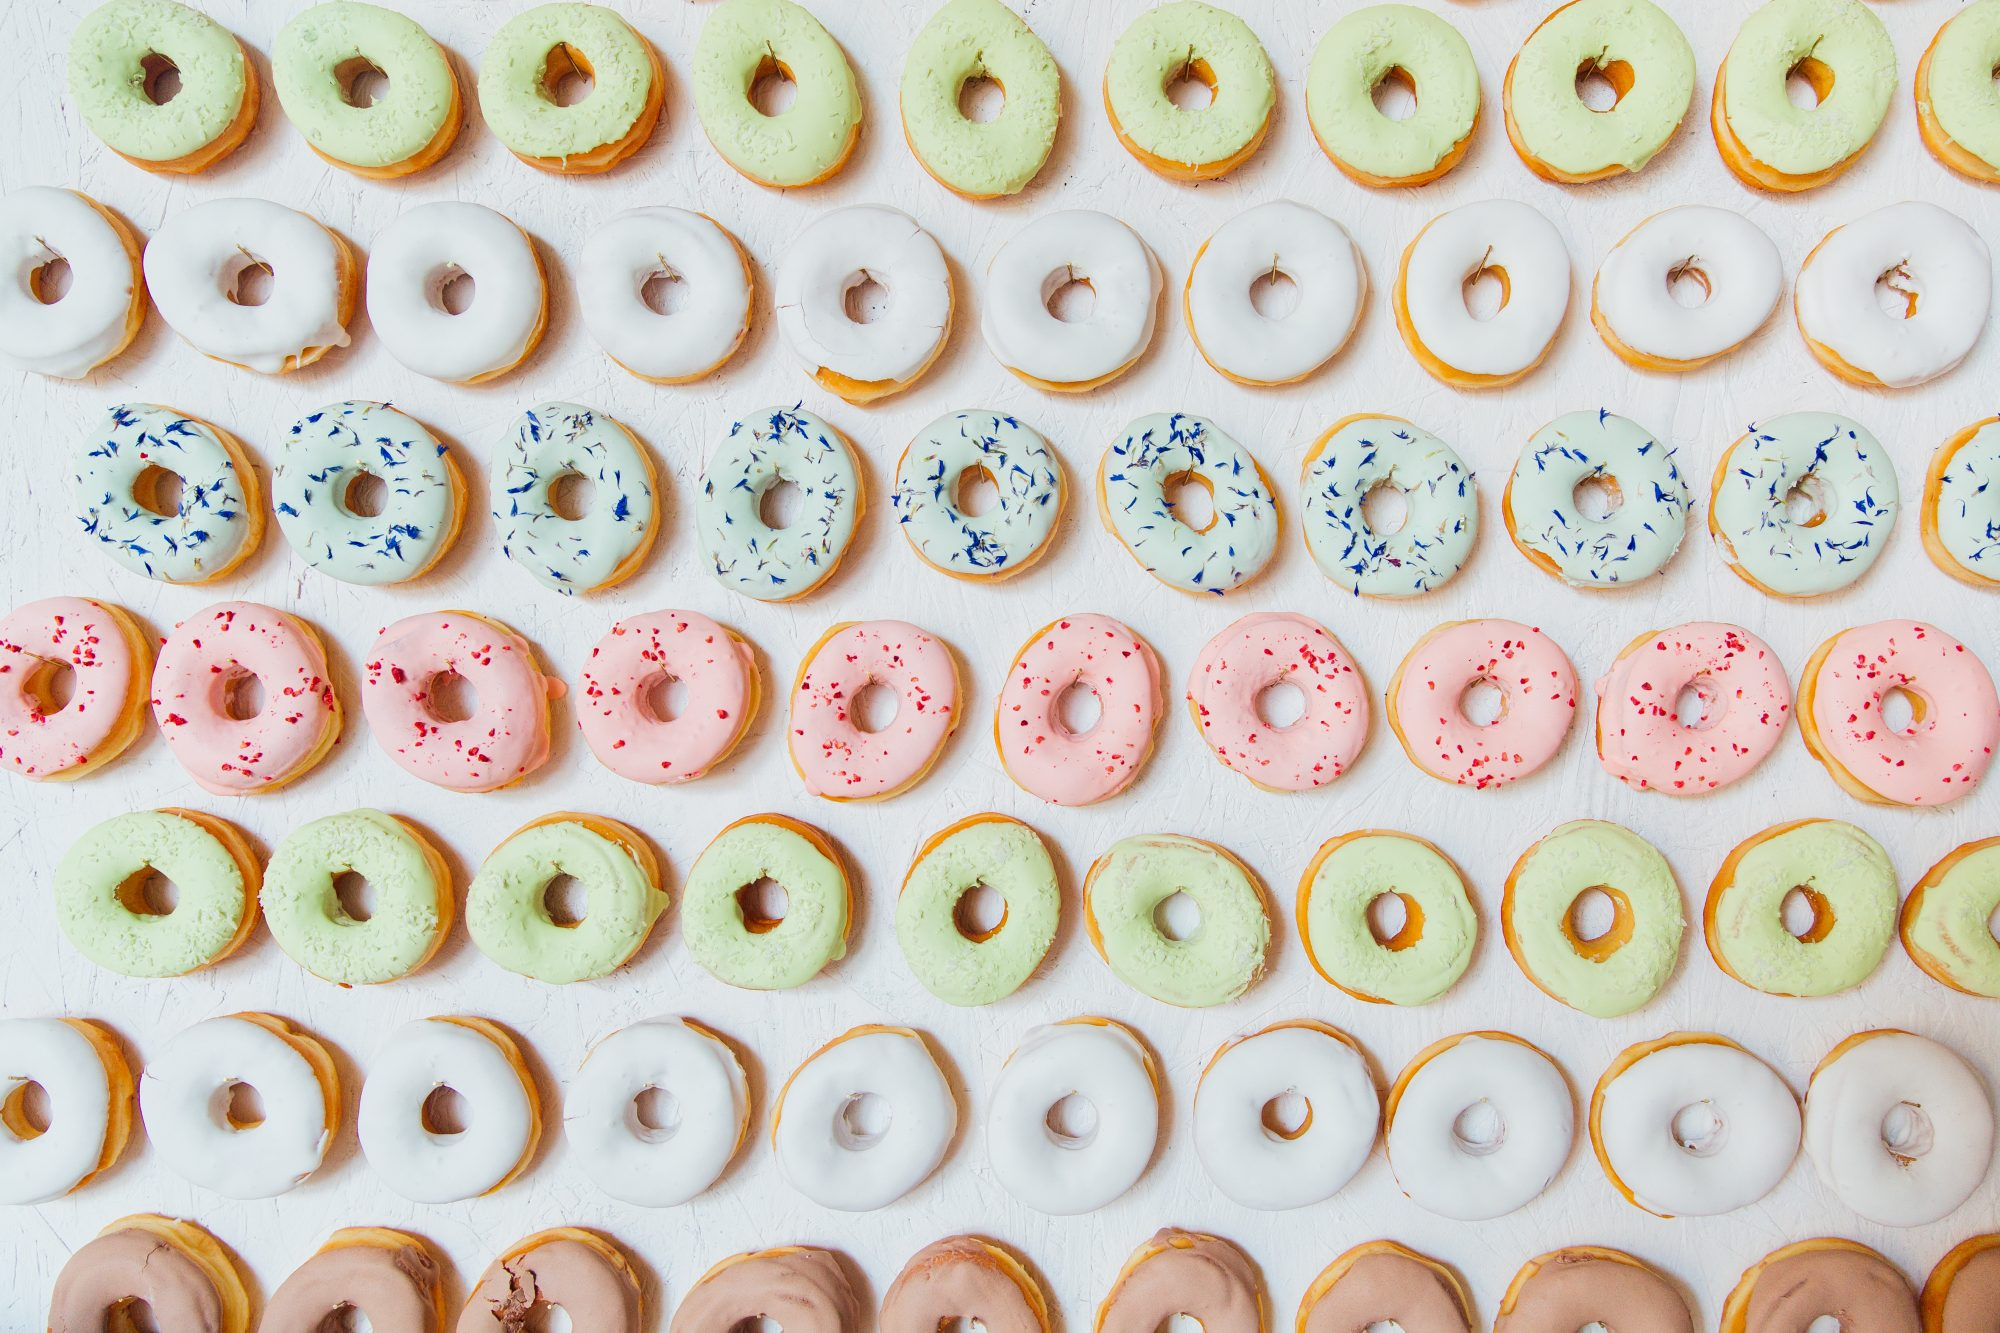 The Healthiest Coffee Drinks, Breakfasts, and Yes, Doughnuts, at Dunkin' Donuts